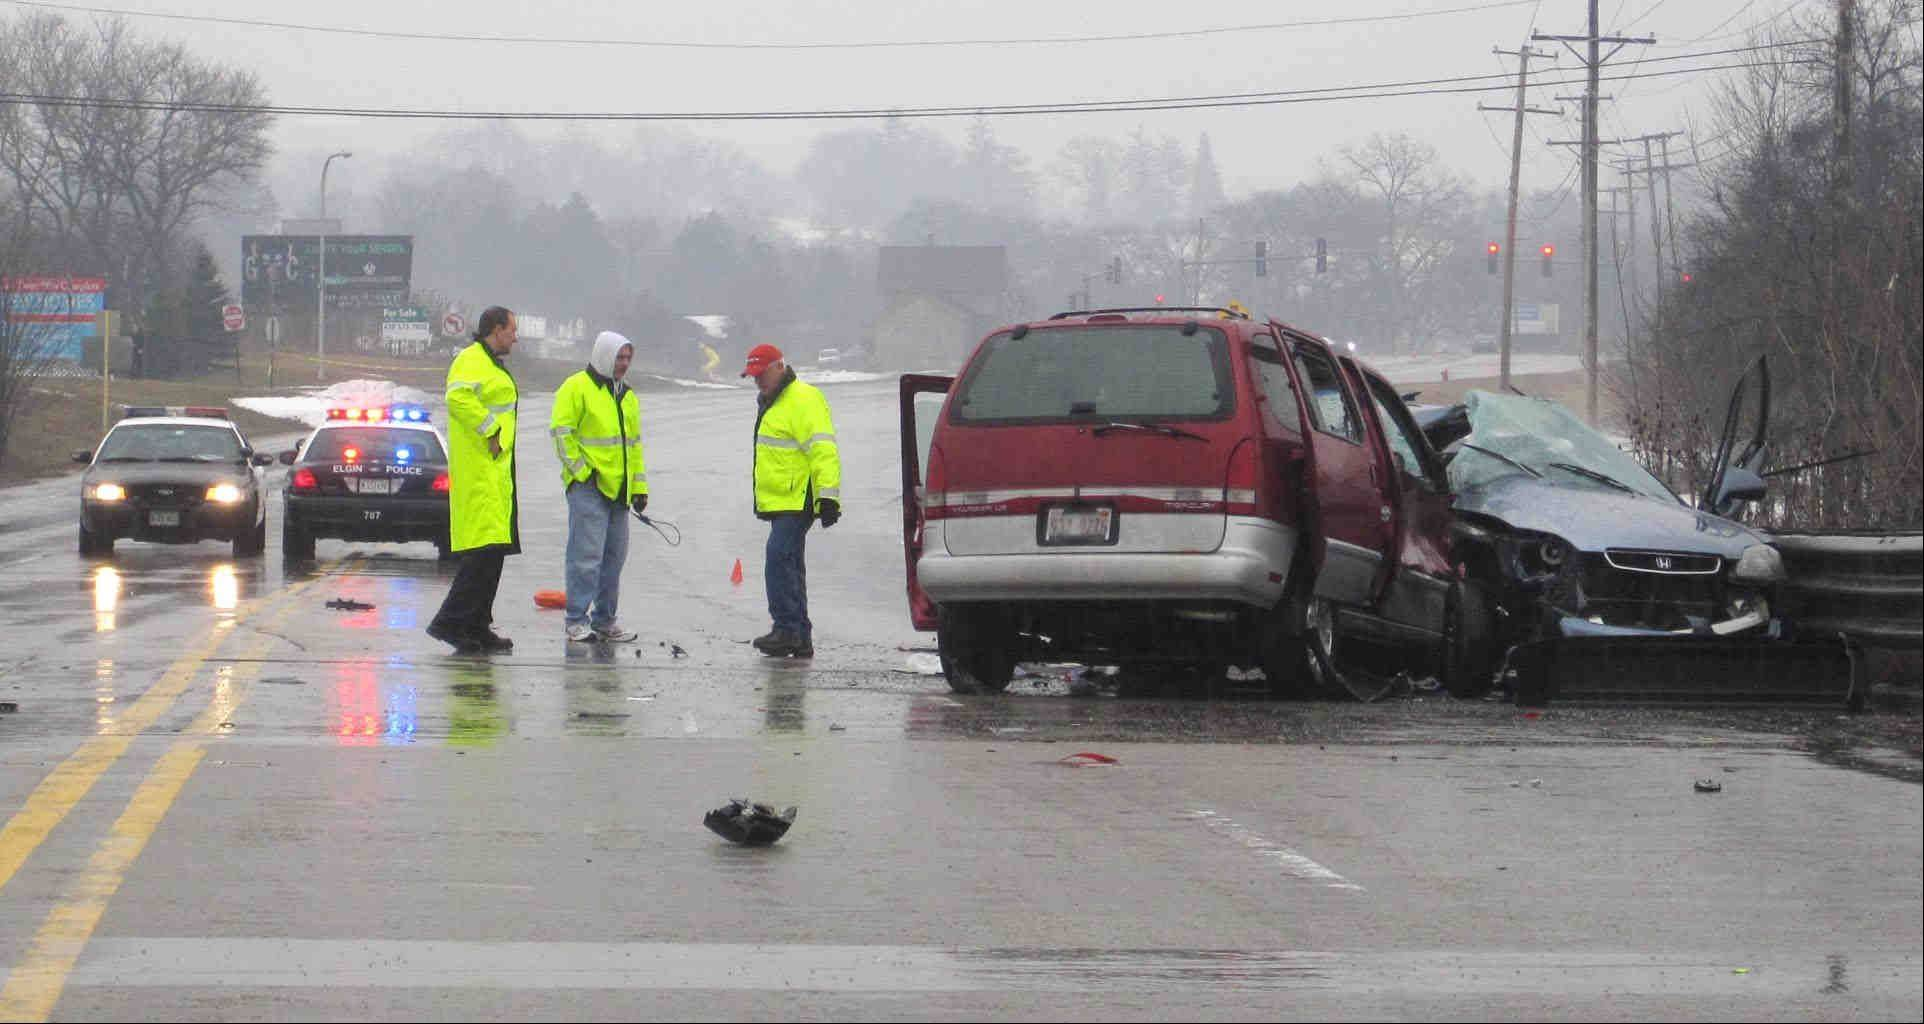 Elgin police at the scene of a crash on Route 20, east of Shales Parkway, that took place at about 2:30 p.m. Sunday. A man died and a woman suffered severe injuries, police said.